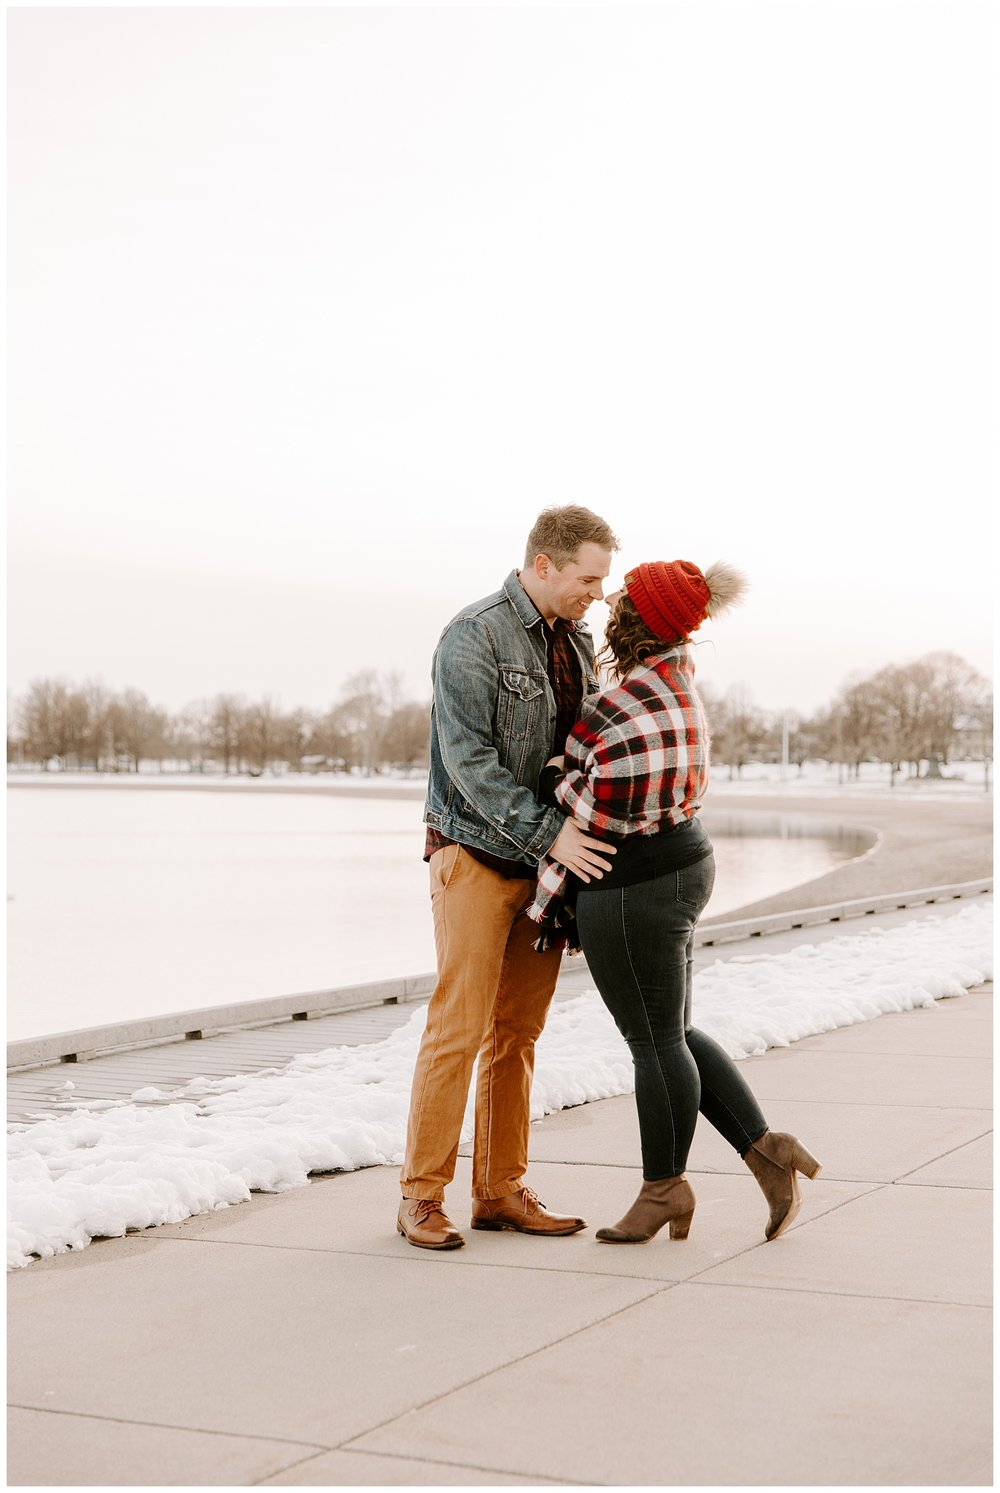 kevin-danielle-snow-winter-engagement-session-castle-island-boston11.jpg